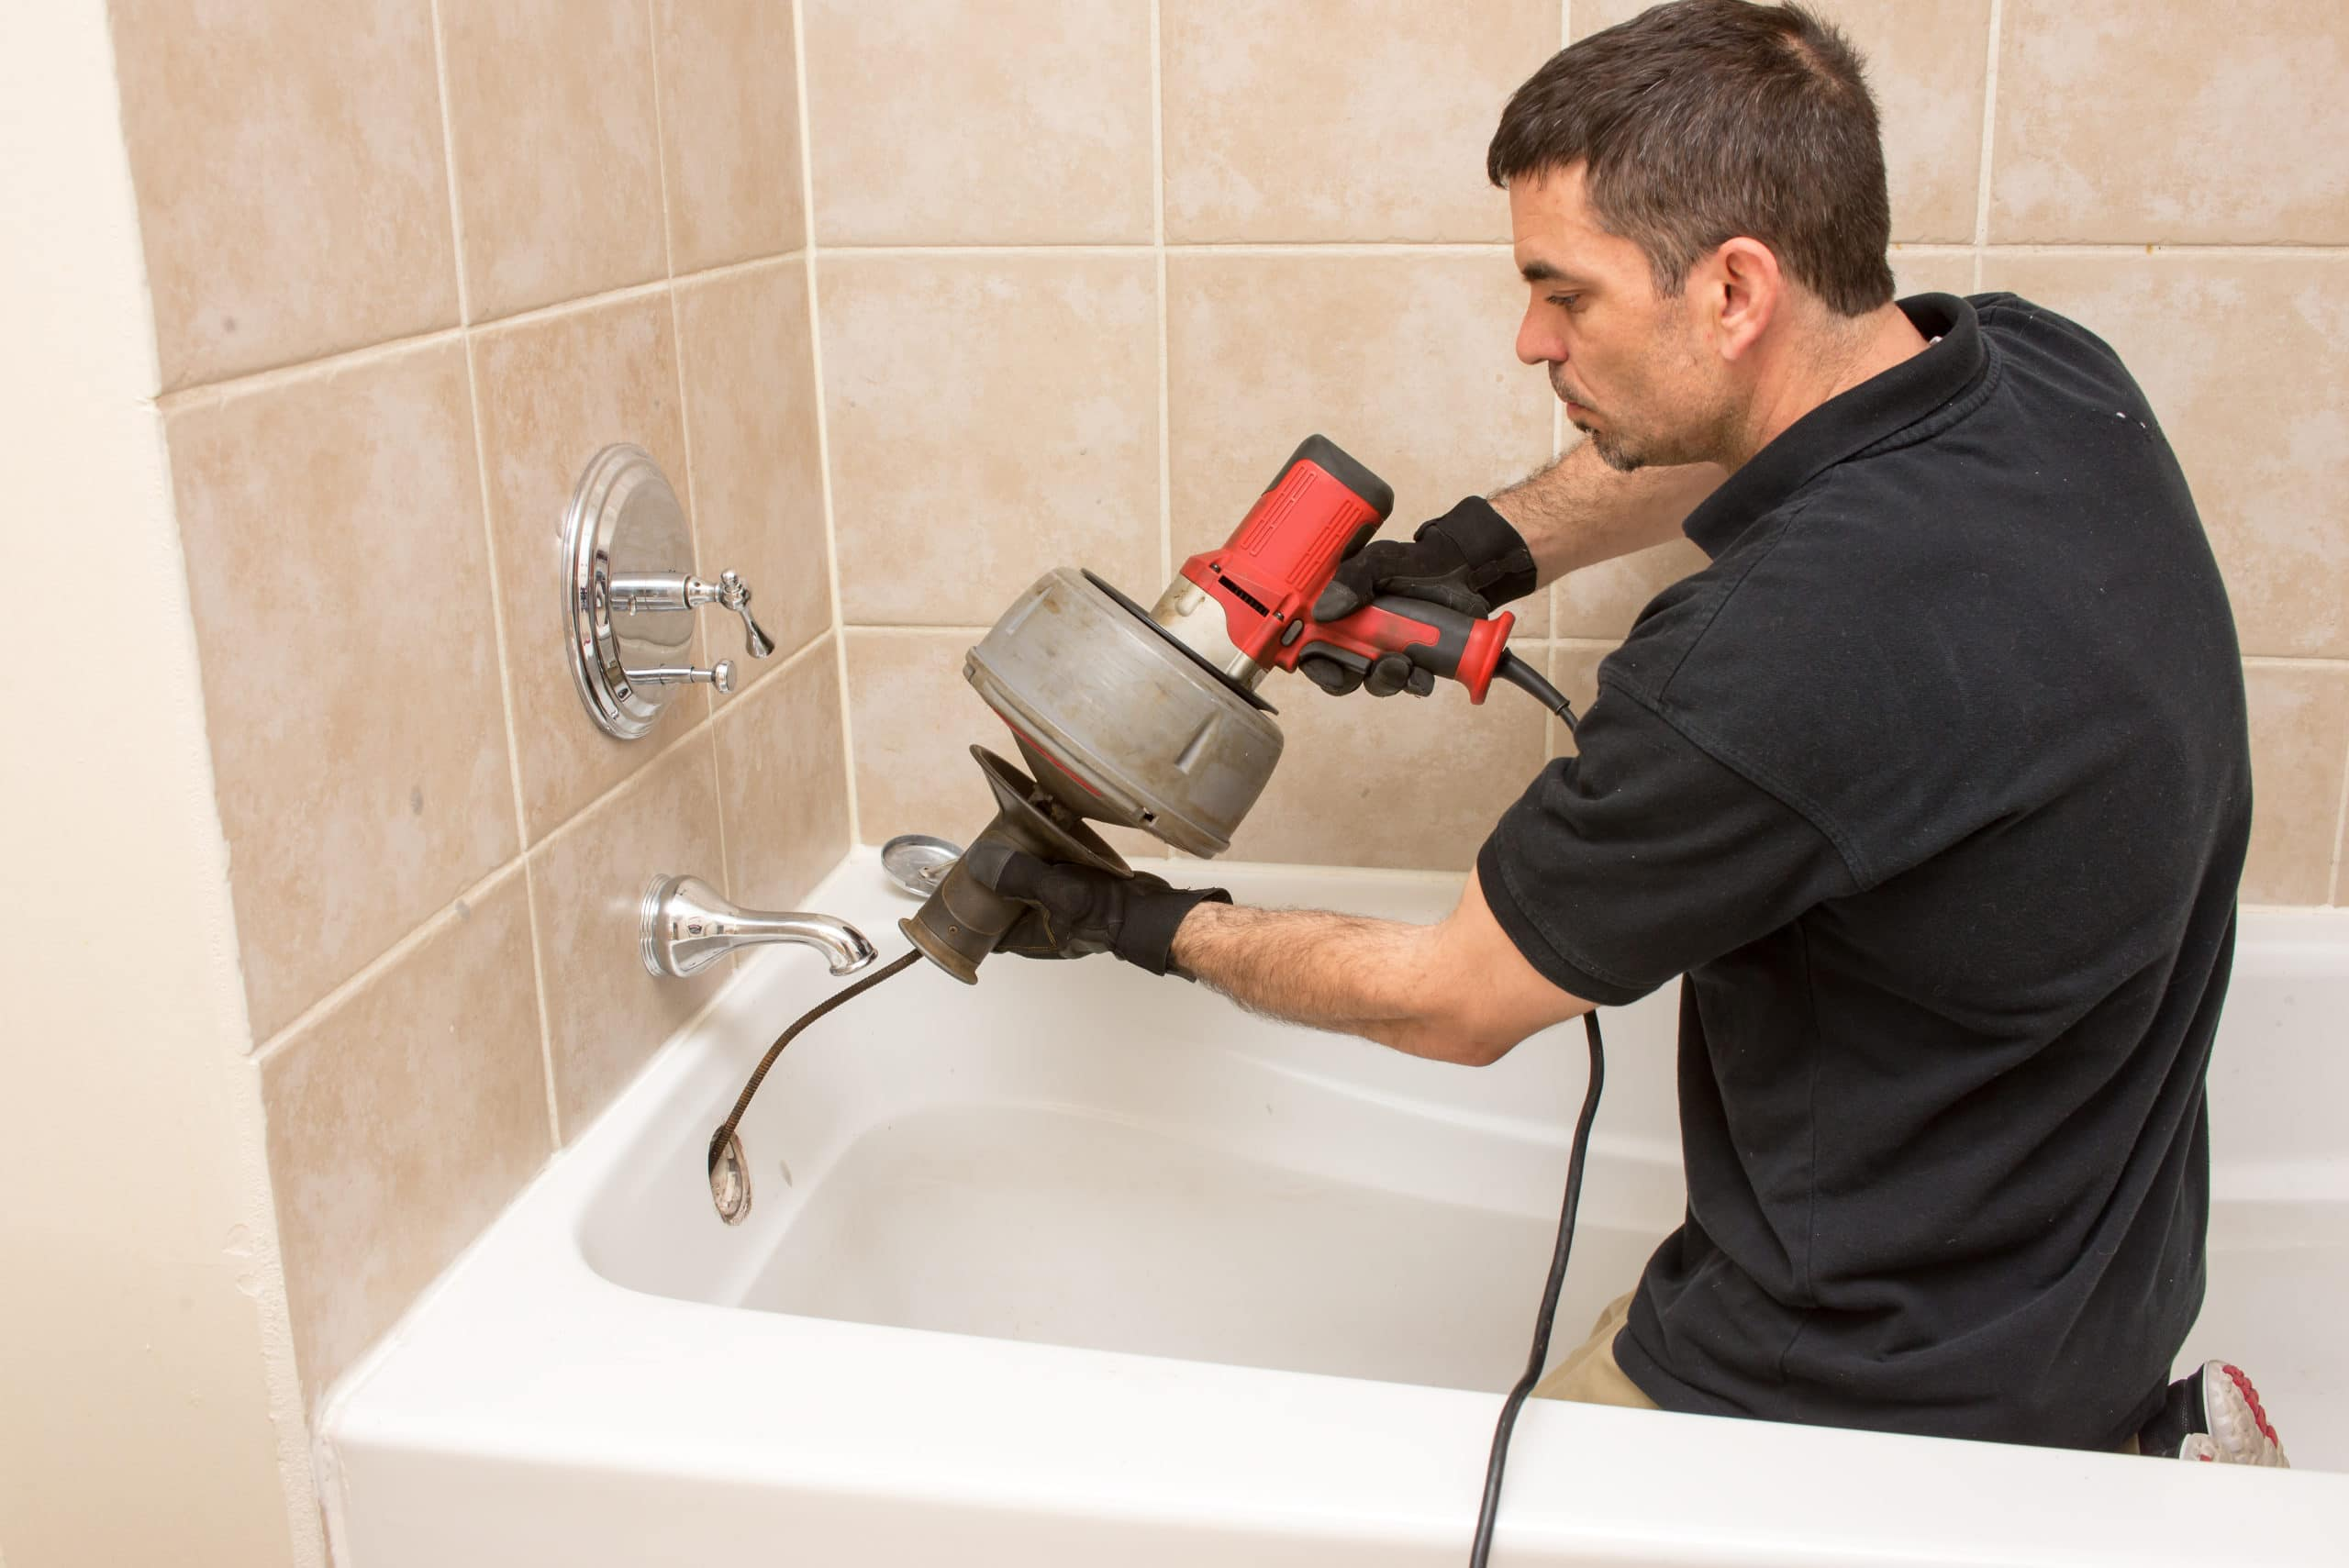 Plumbing and Rooter